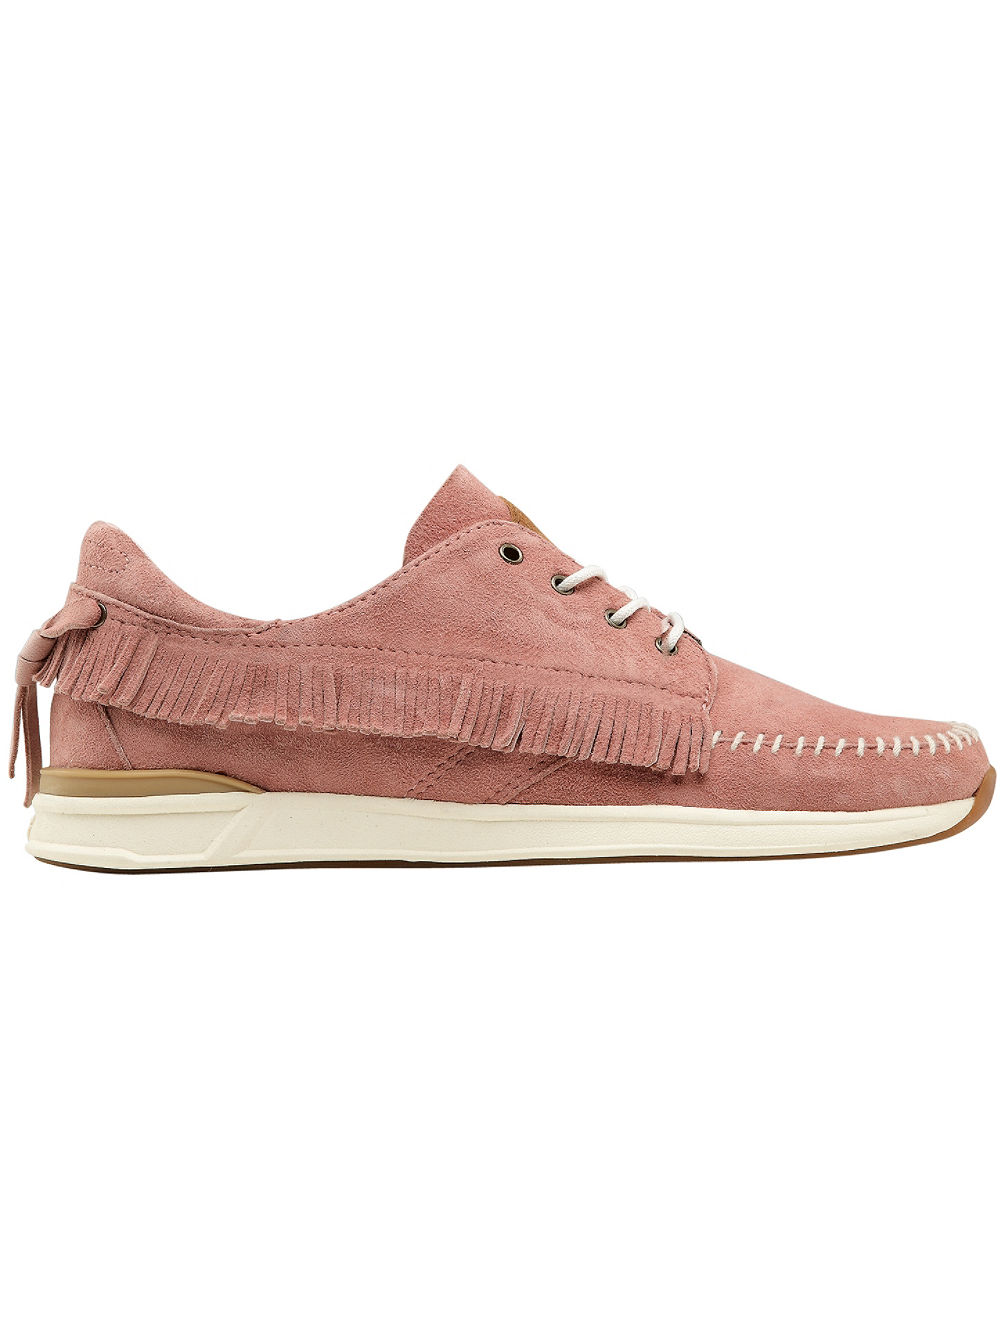 Rover Low Fashion Sneakers Women